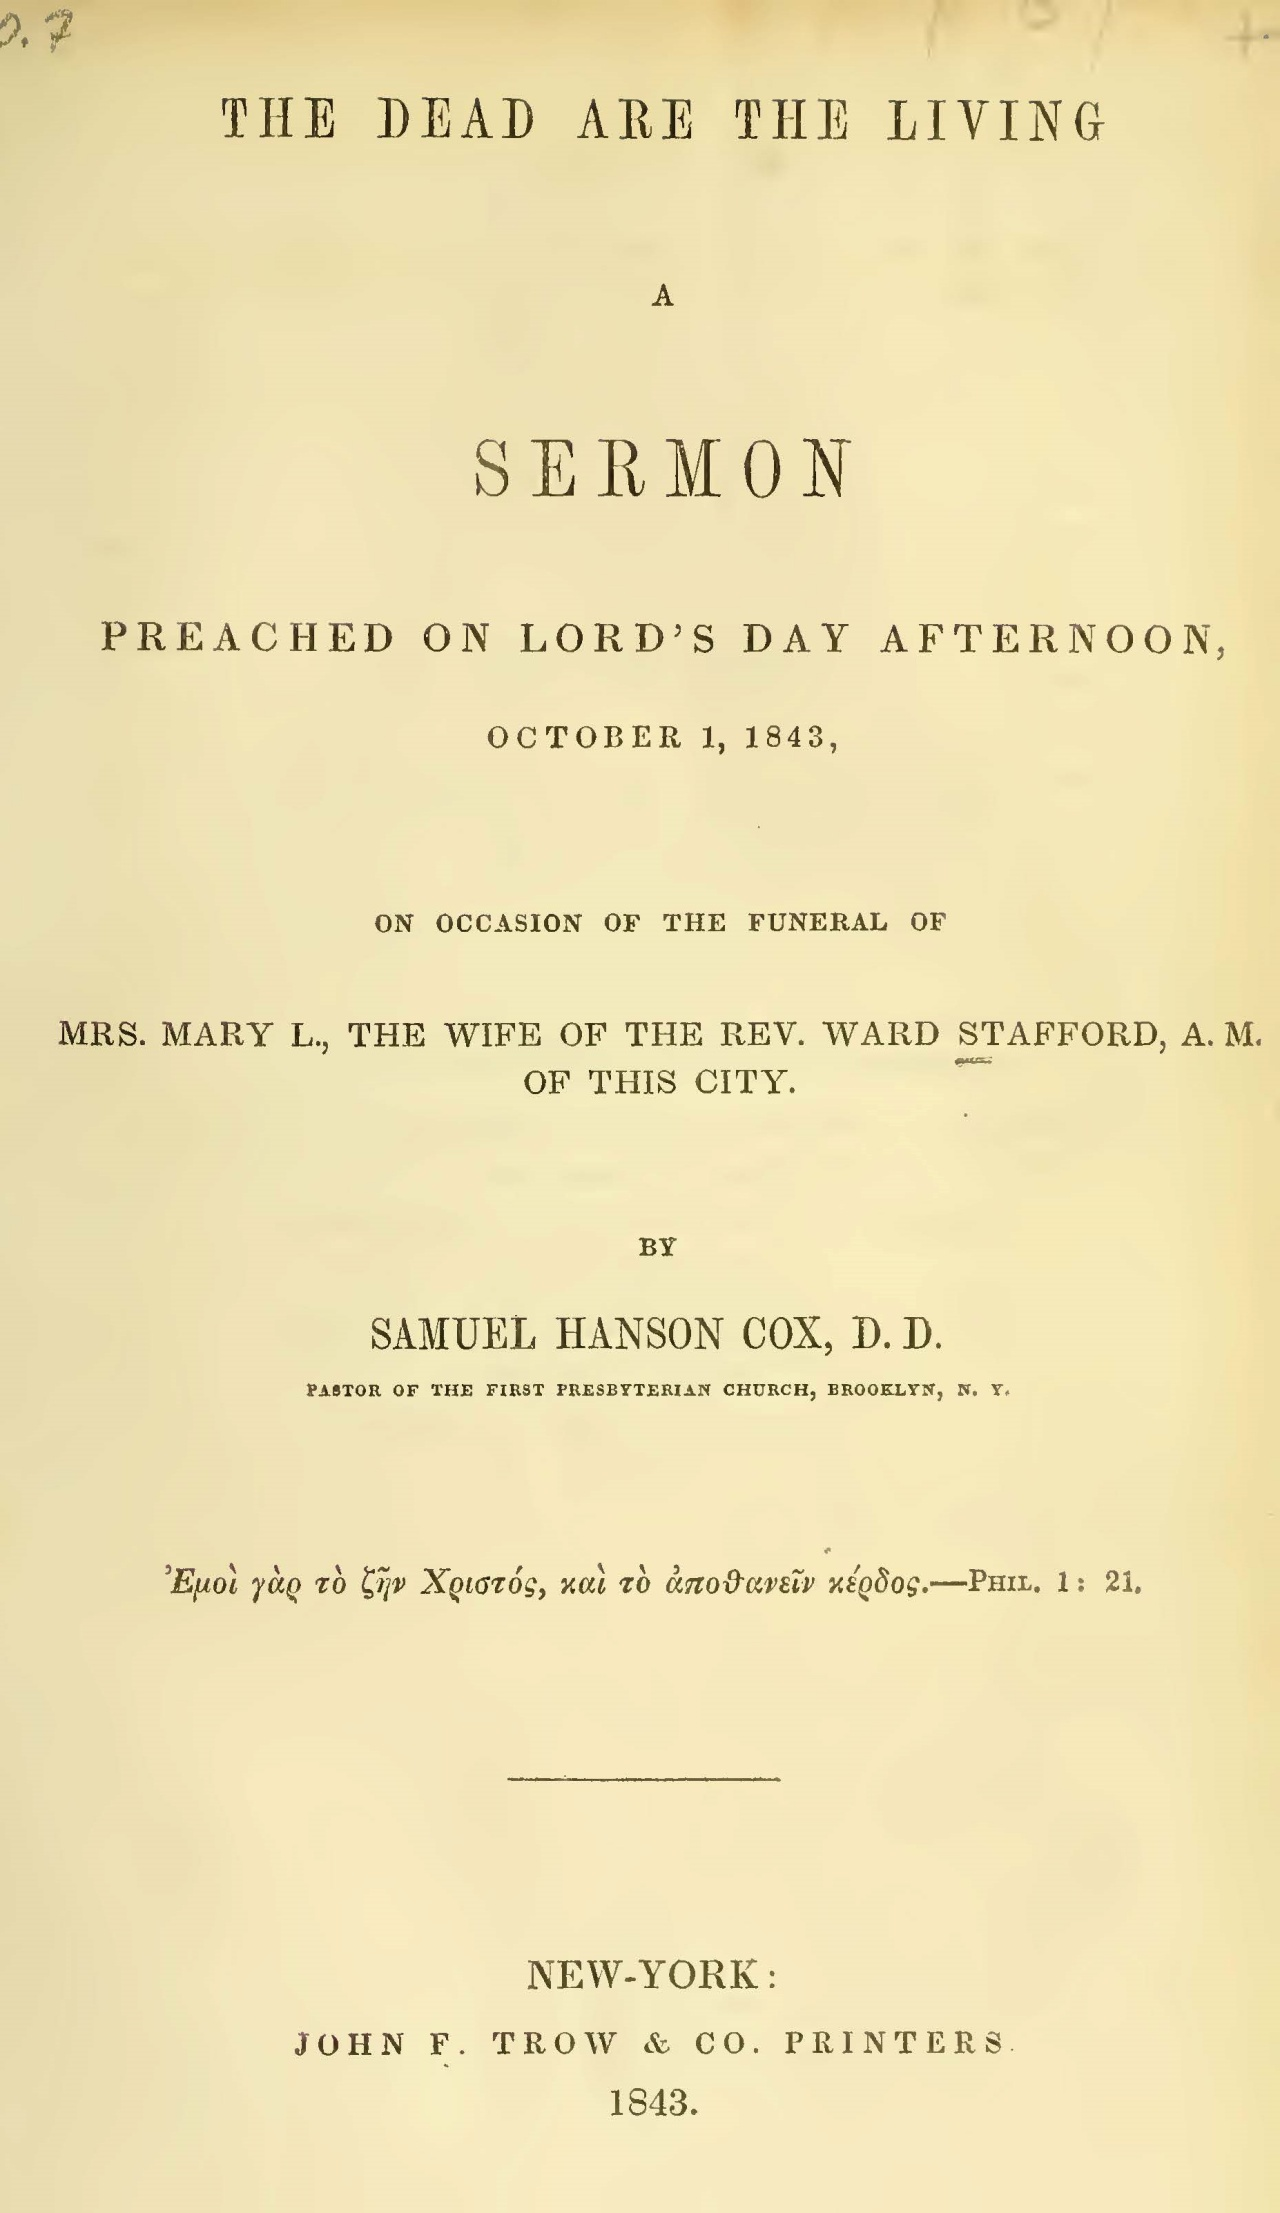 Cox, Samuel Hanson, The Dead are the Living Title Page.jpg